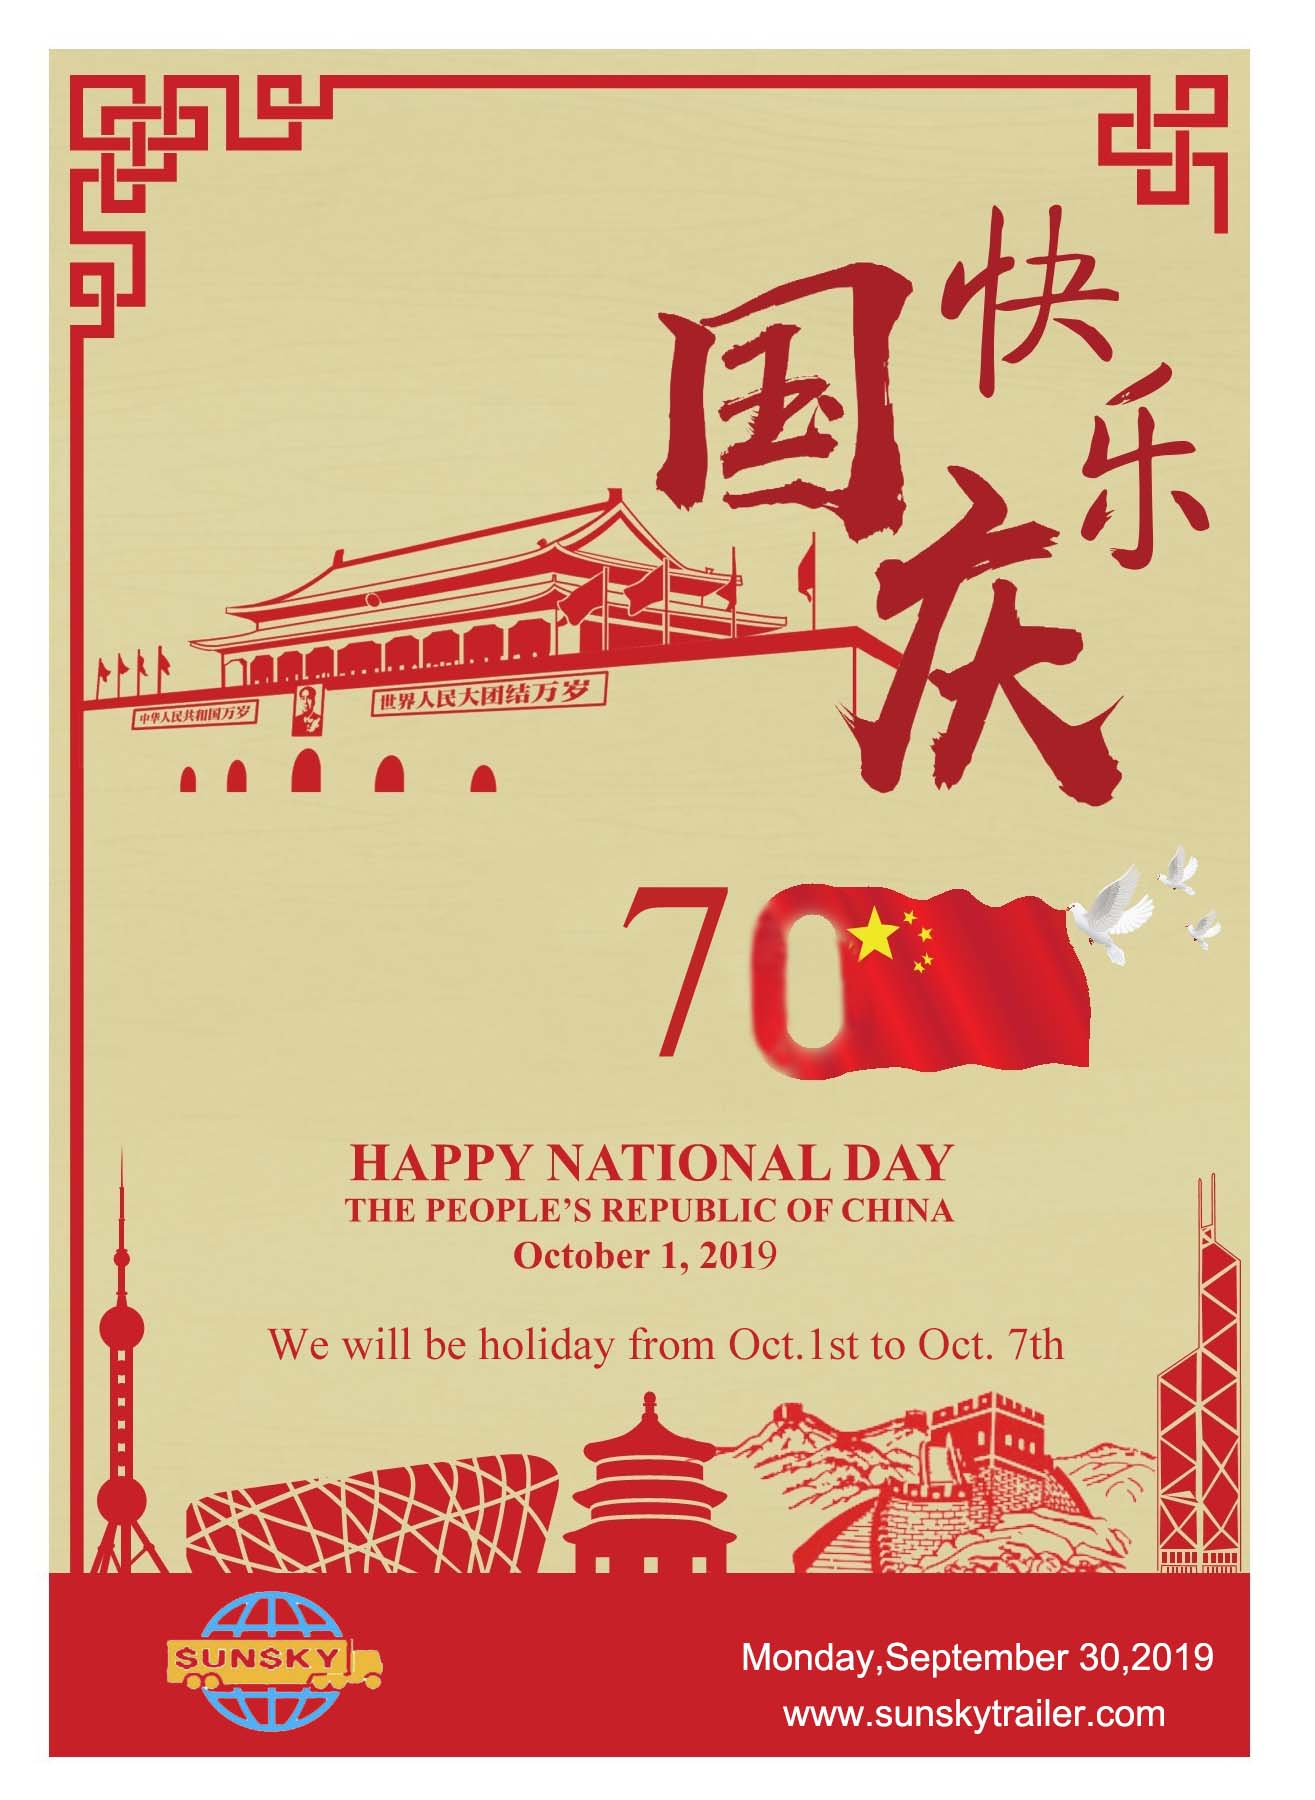 SUNSKY trailer and truck: Happy China National Day 70 Years